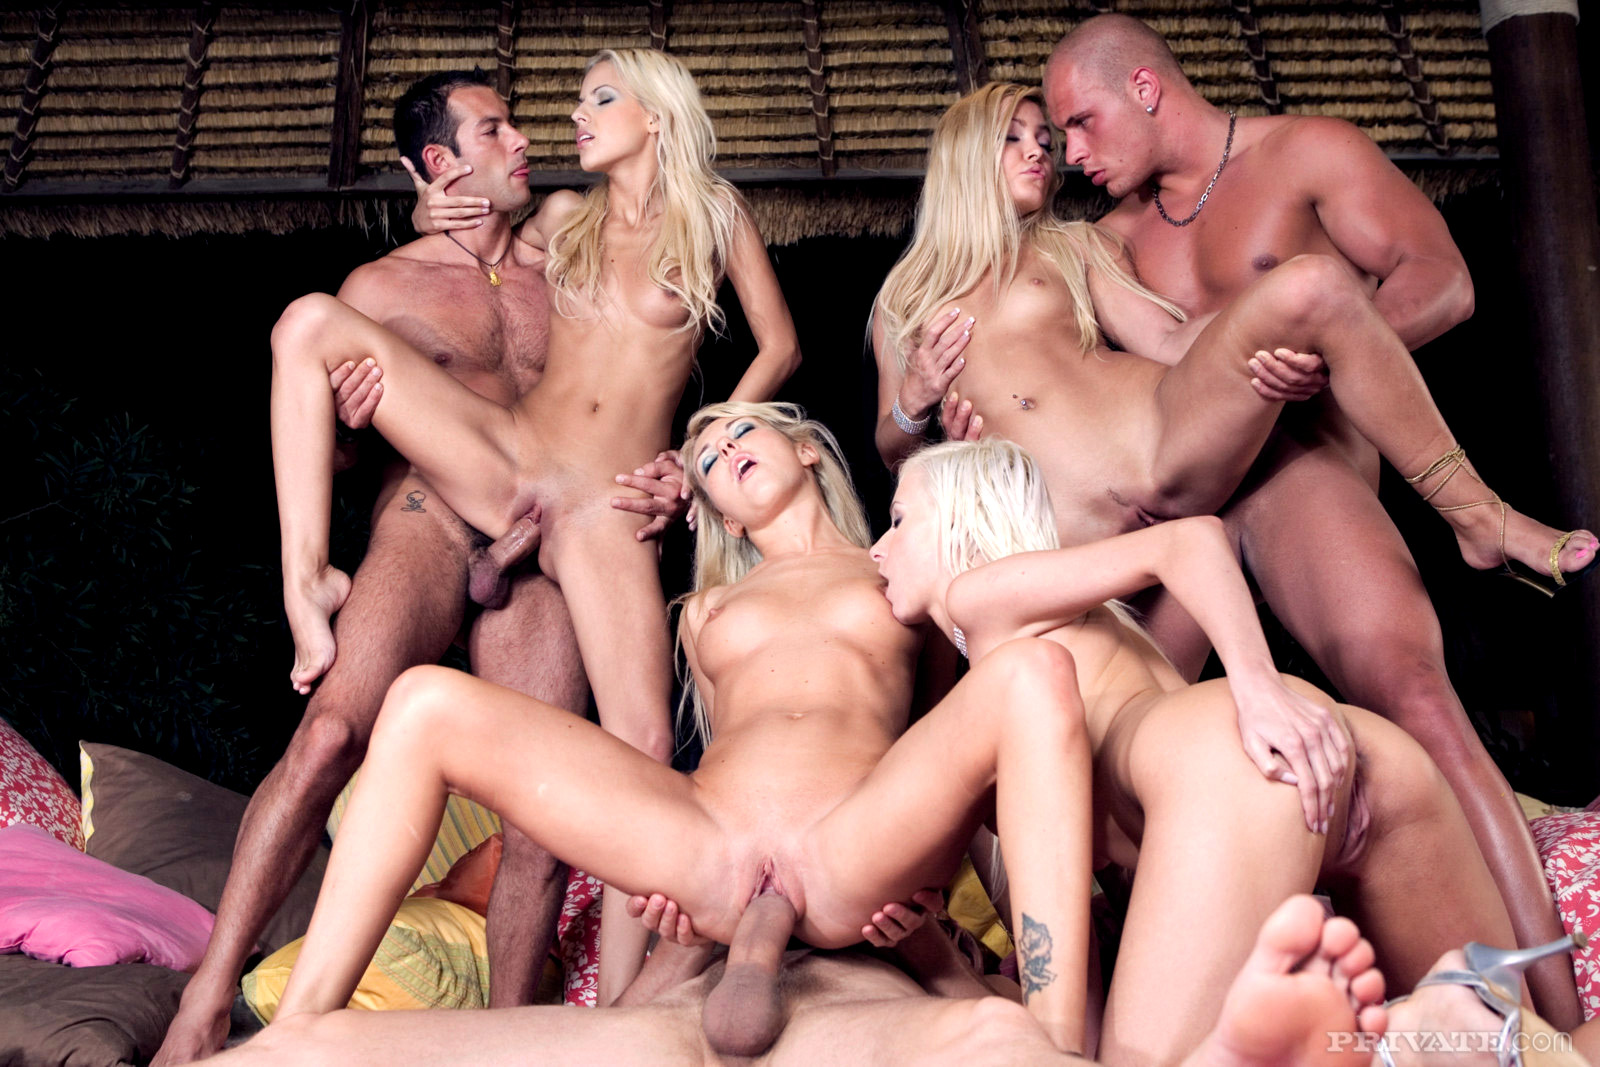 multiple-sex-partners-videos-nude-blonde-moms-in-heels